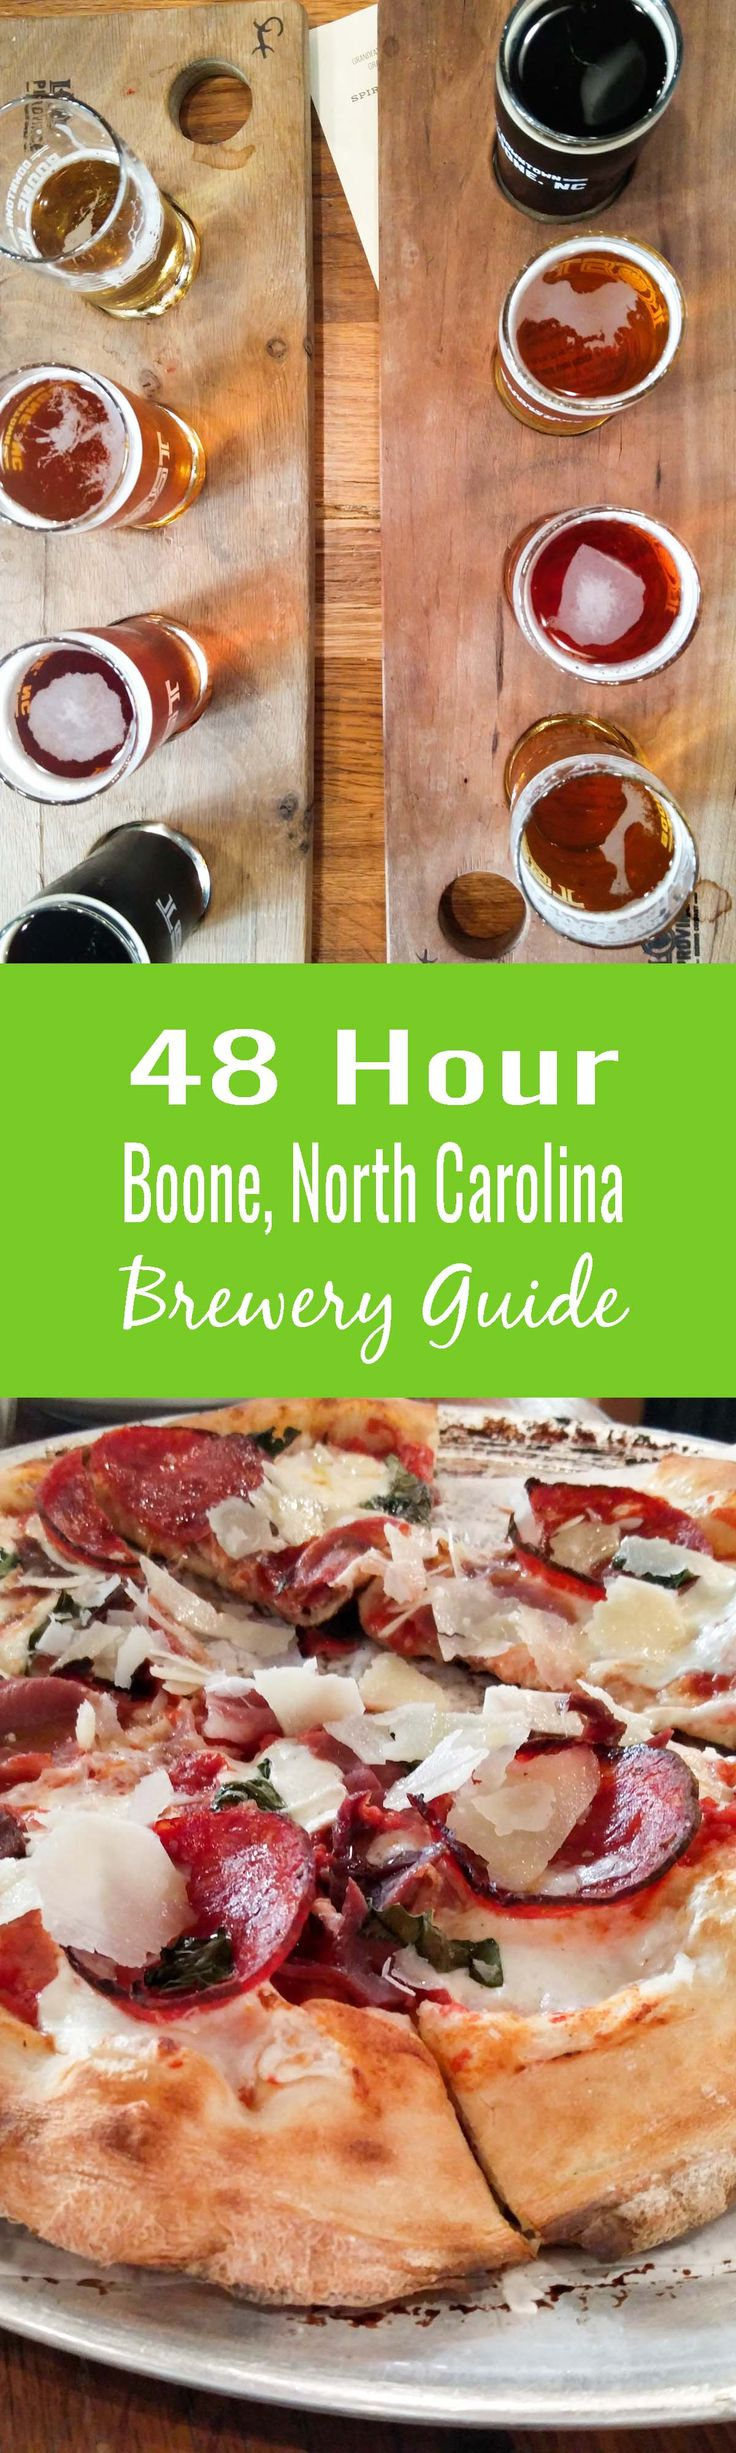 Boone, North Carolina is a great mountain alternative to Asheville. Plan your trip with my Boone Brewery Guide!